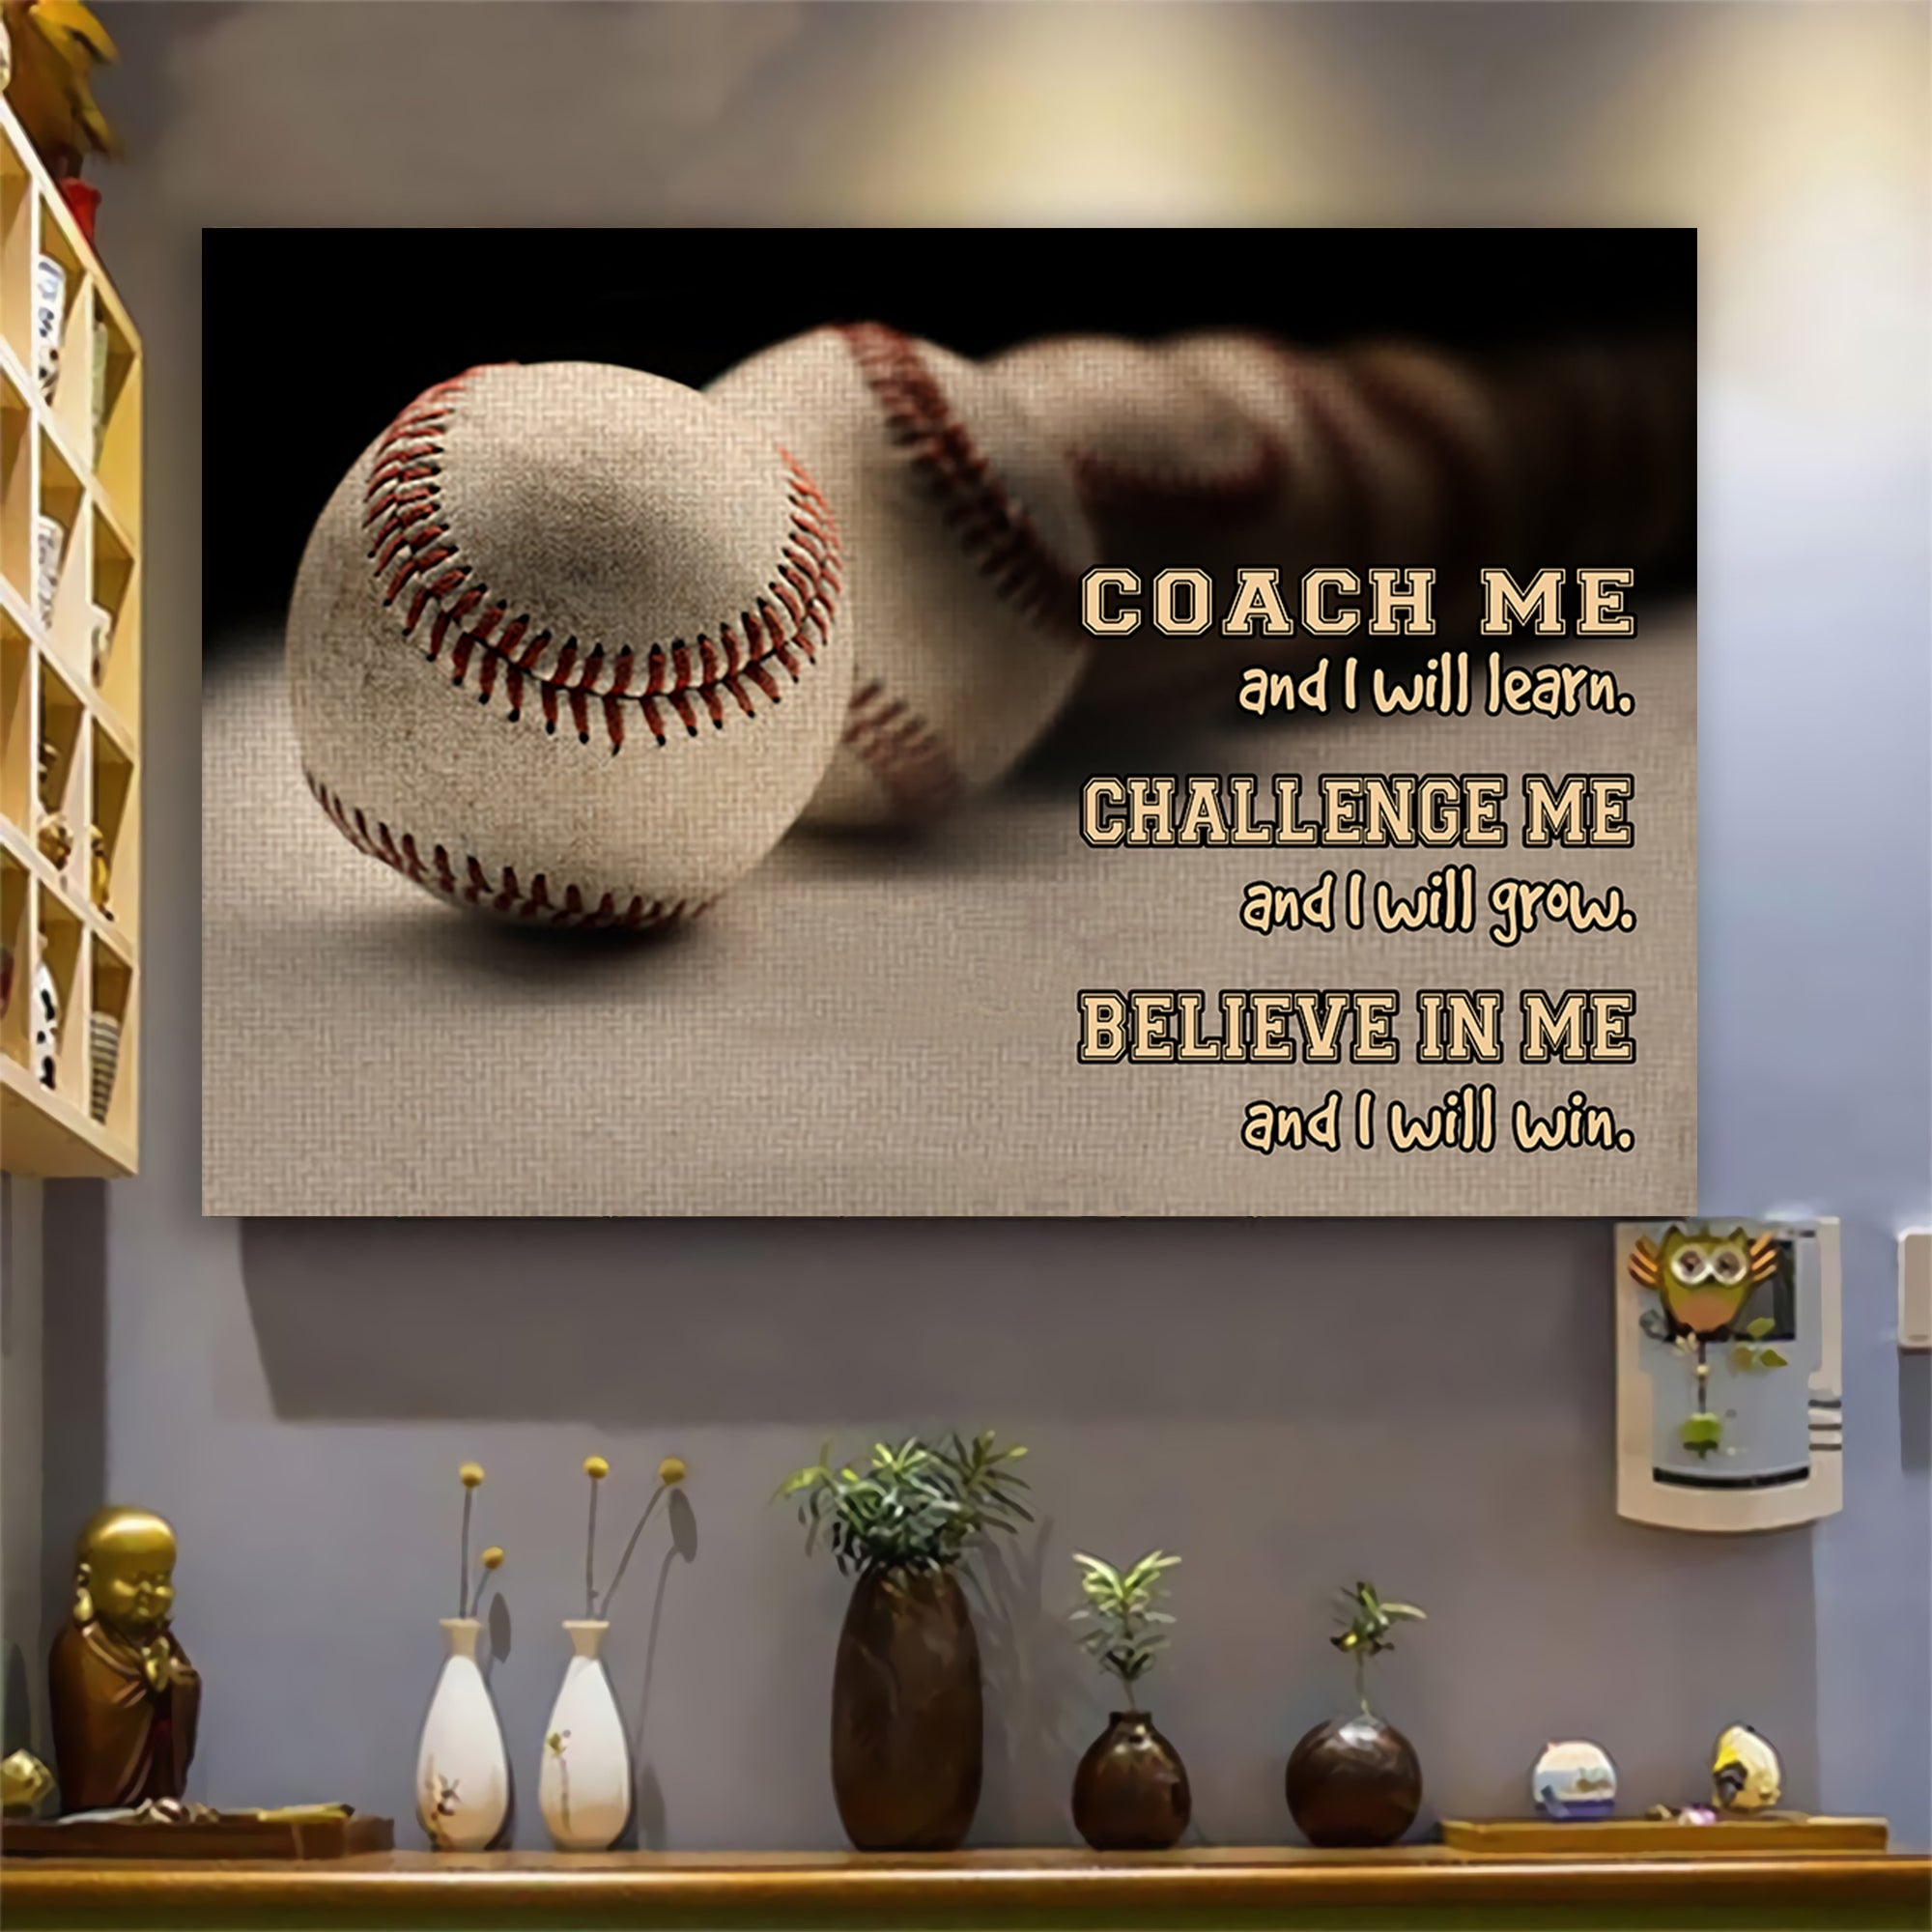 (LP349) Customizable Baseball Poster - Coach me and I will learn - FREE SHIPPING ON ORDERS OVER $75